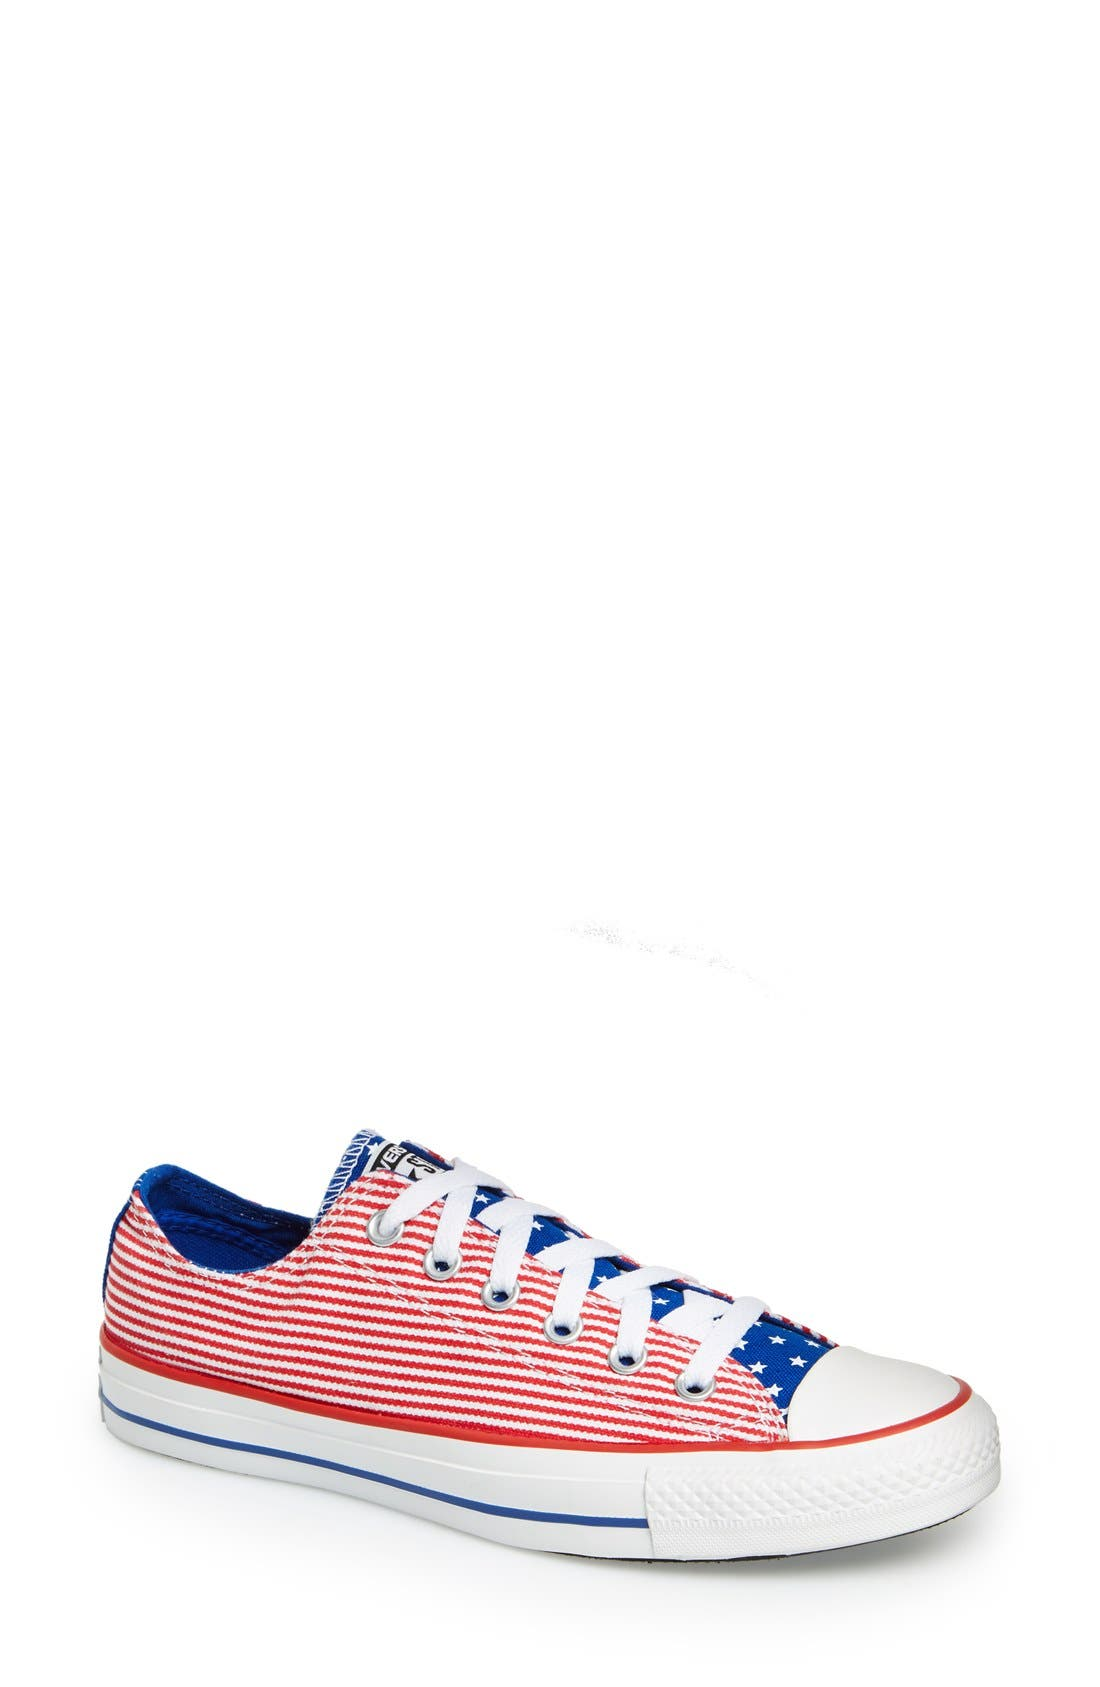 Alternate Image 1 Selected - Converse Chuck Taylor® All Star® 'Ox - Stars and Bars' Low Top Sneaker (Women)